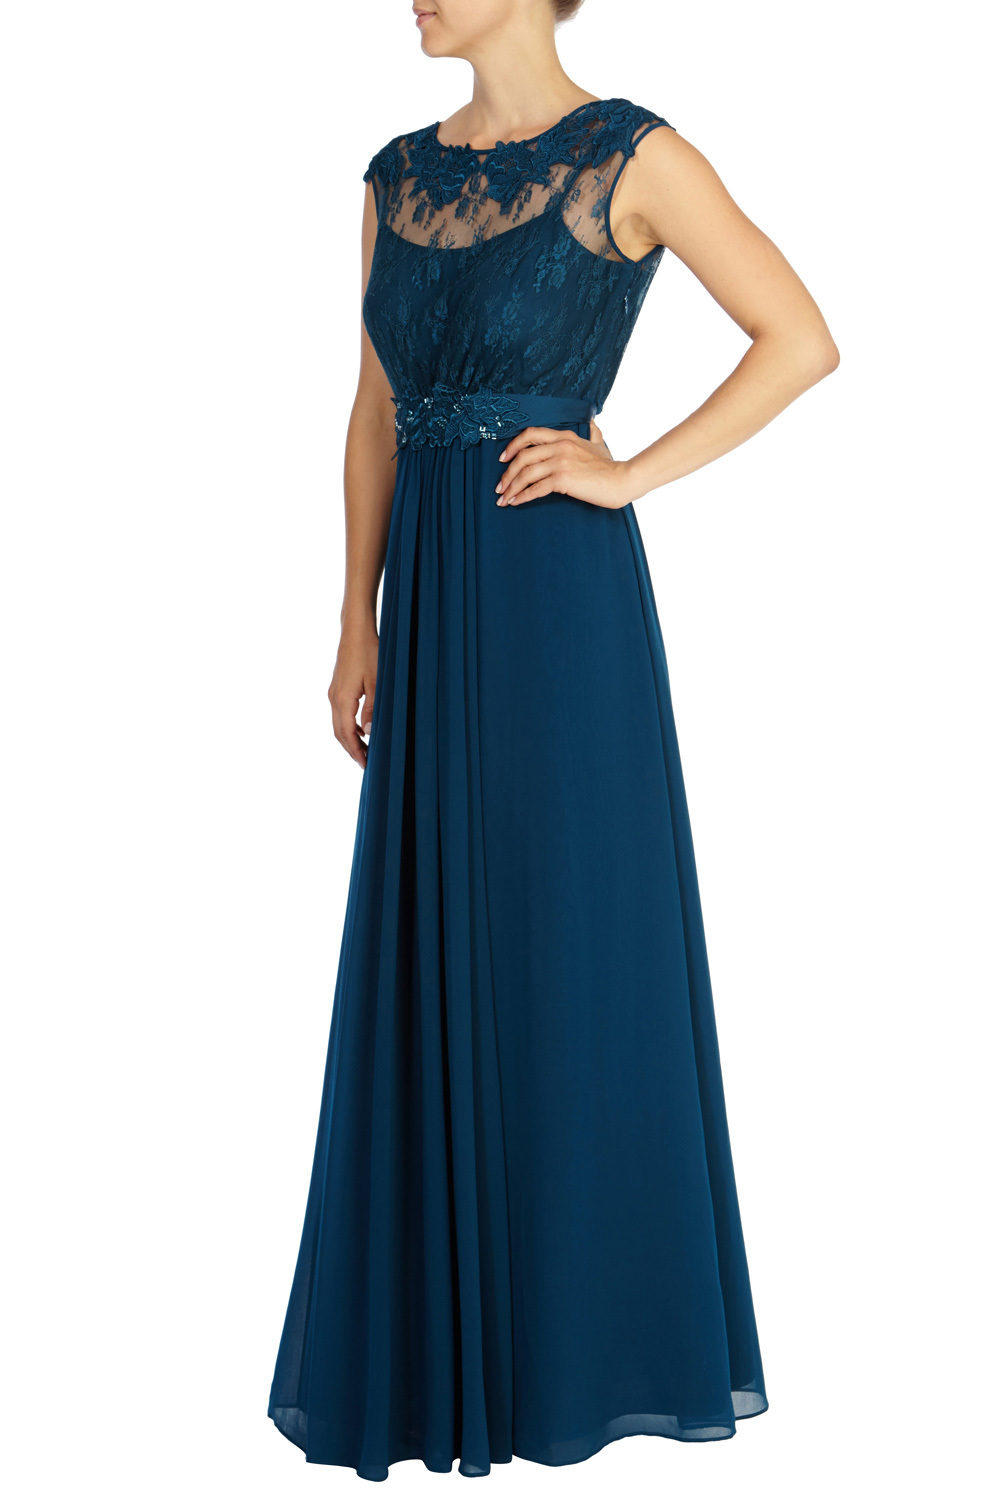 Lori May Maxi Dress - fit: fitted at waist; pattern: plain; sleeve style: sleeveless; style: maxi dress; bust detail: sheer at bust; predominant colour: teal; occasions: evening; length: floor length; fibres: polyester/polyamide - 100%; neckline: crew; hip detail: soft pleats at hip/draping at hip/flared at hip; sleeve length: sleeveless; texture group: sheer fabrics/chiffon/organza etc.; pattern type: fabric; embellishment: lace; season: a/w 2015